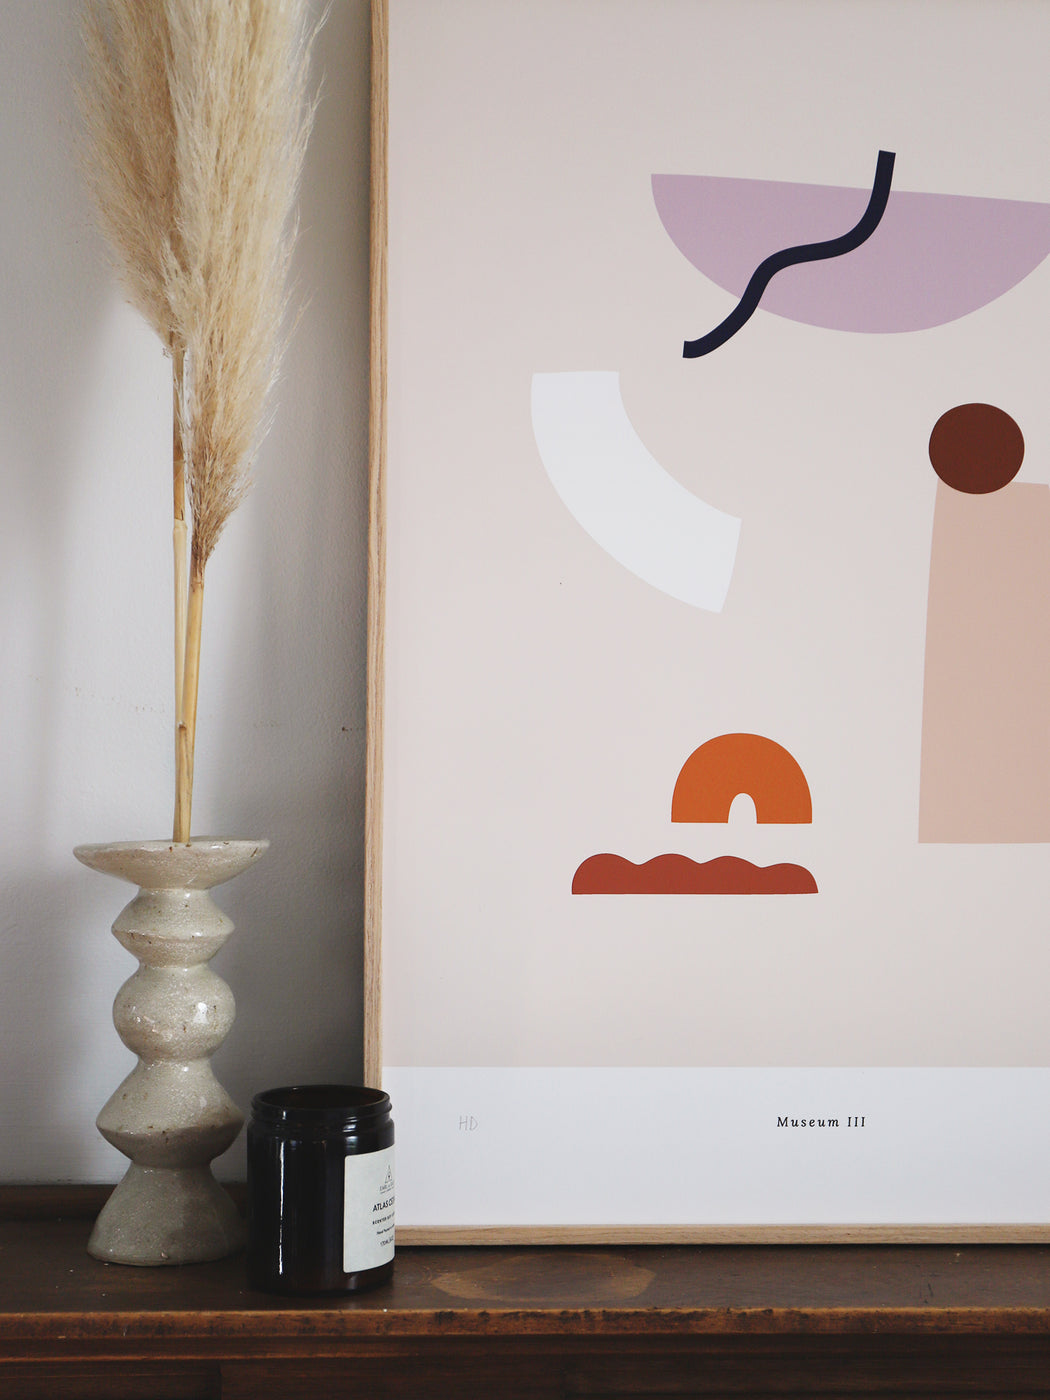 High quality giclée fine art print on 210gsm smooth matt paper.  Abstract print with shapes inspired by artefacts and objects found at a museum.